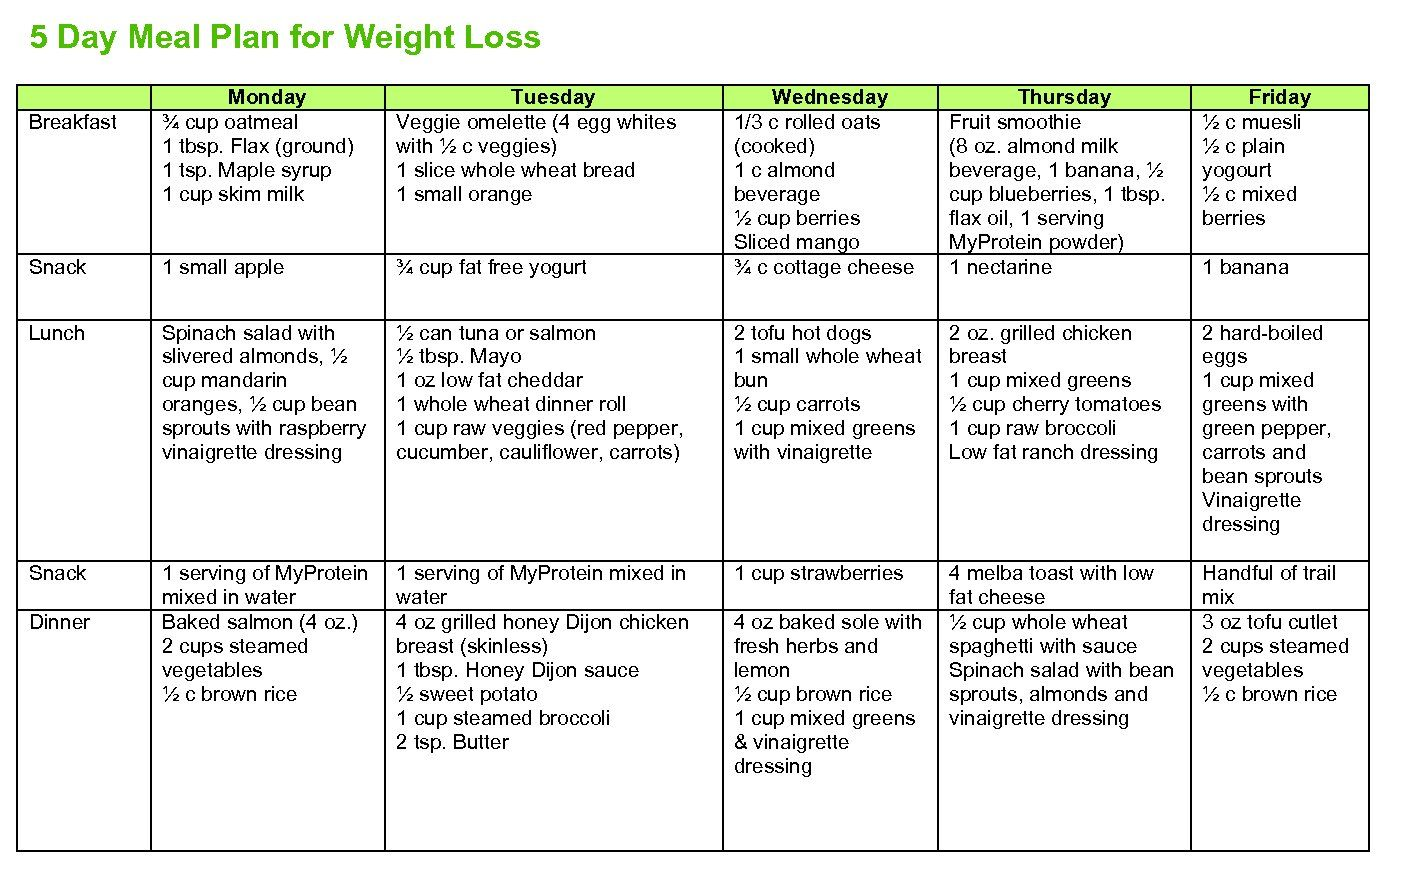 Diet Charts And Diet Plans For Weight Loss Diet Is Very Important